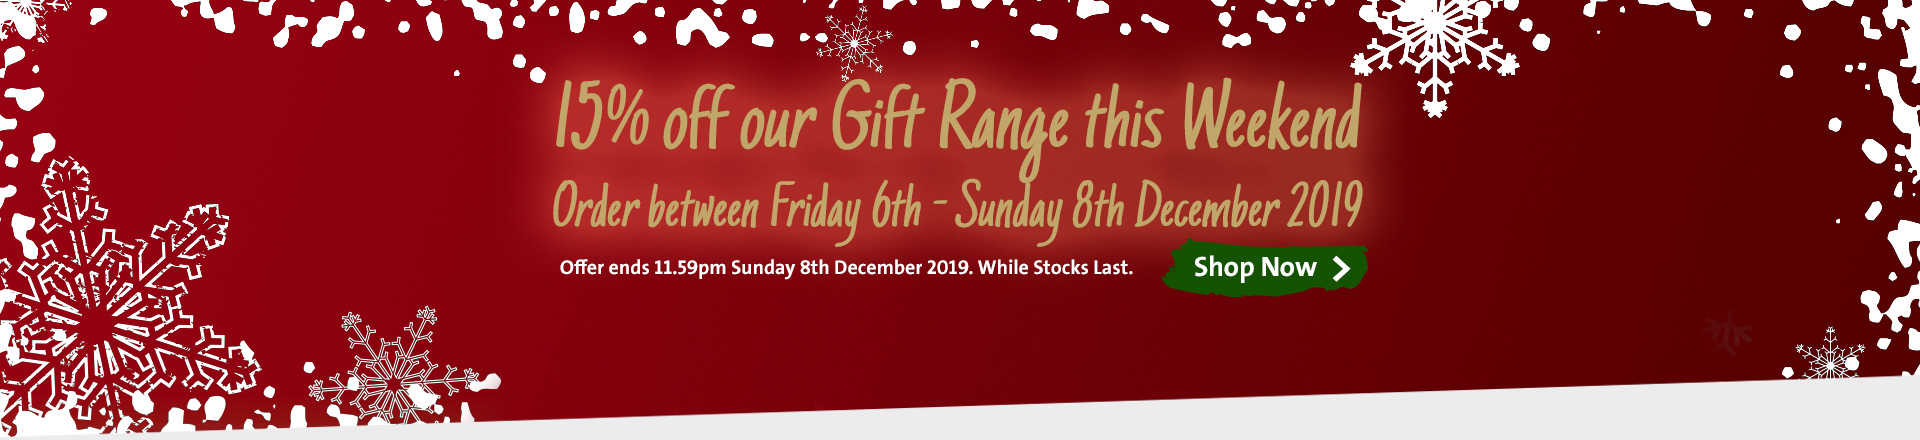 15% off Gifts